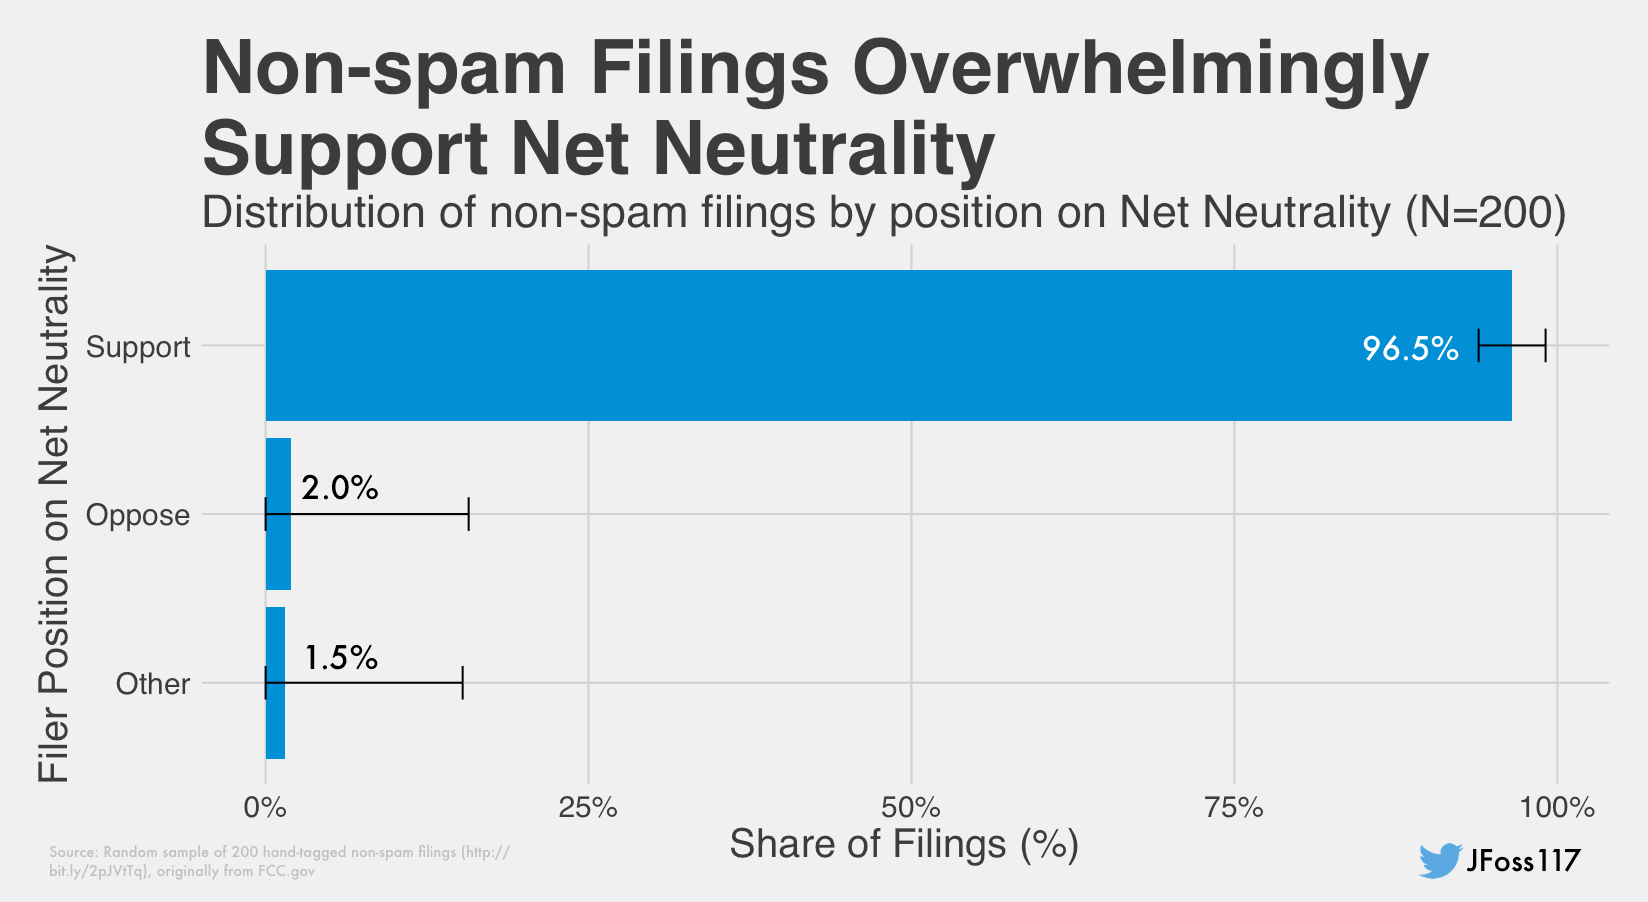 Last week, we reported that tens of thousands of fraudulent comments had been filed in favor Ajit Pai's proposal to roll back net neutrality rules, using text taken from the Center for Individual Freedom (though, according to the CFIF, they aren't behind the fake comments). We spoke to several people who had comments filed under their names and addresses, as did reporters from other outlets, and several more supposed commenters responded to our emails after publication saying they hadn't…